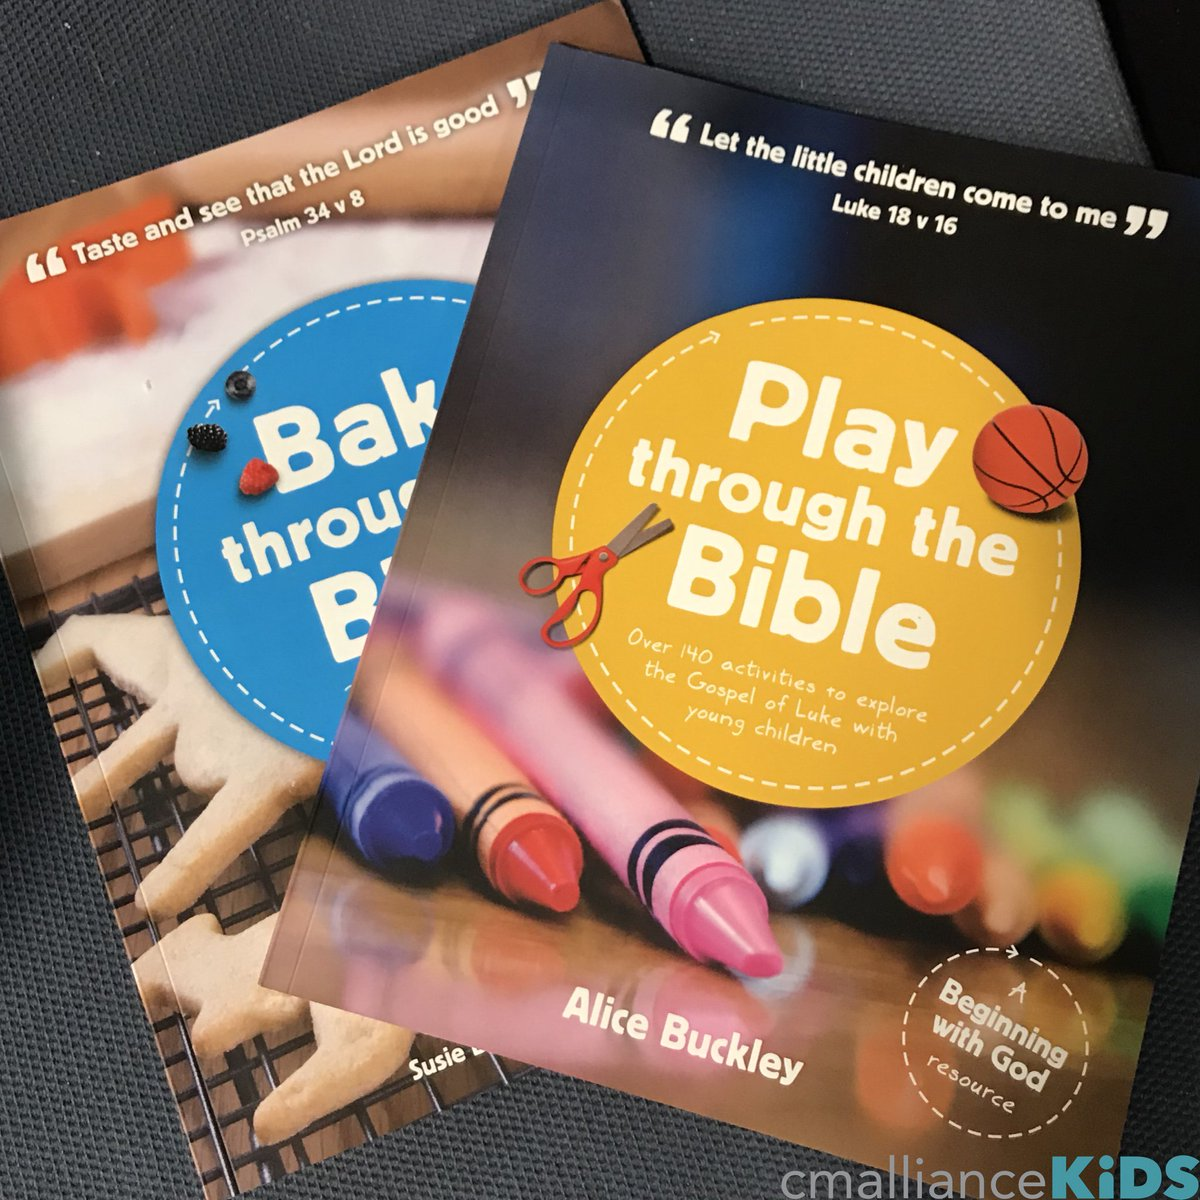 This Week Bake Through The Bible And Play Enter To Win By Commenting With Your Biggest Kidmin Mishap